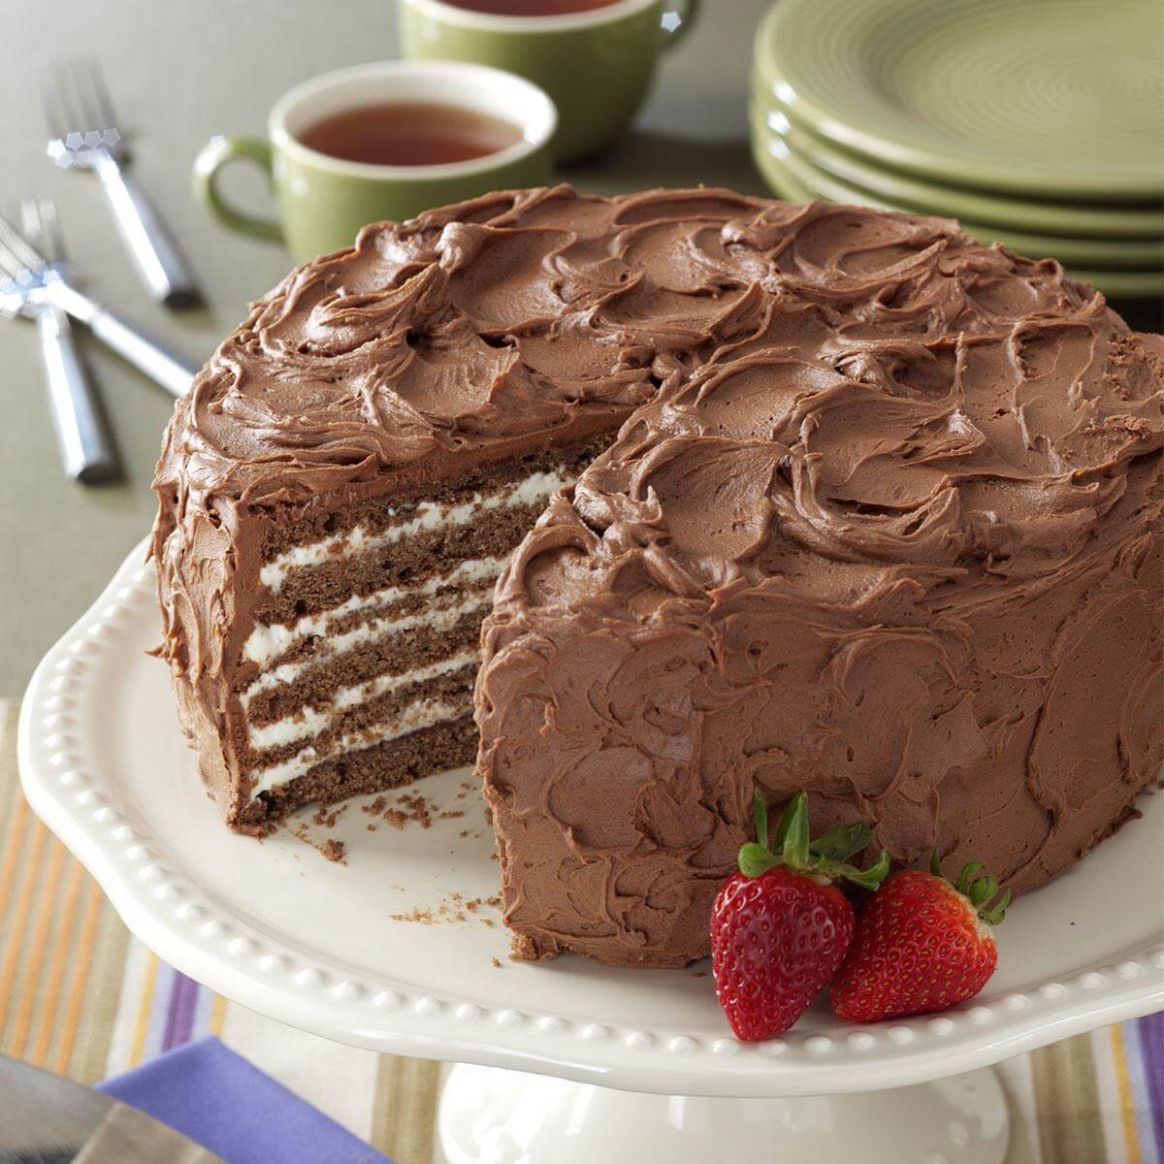 Chocolate/Whipping Cream Torte - Dessert Recipes That Use Heavy Whipping Cream